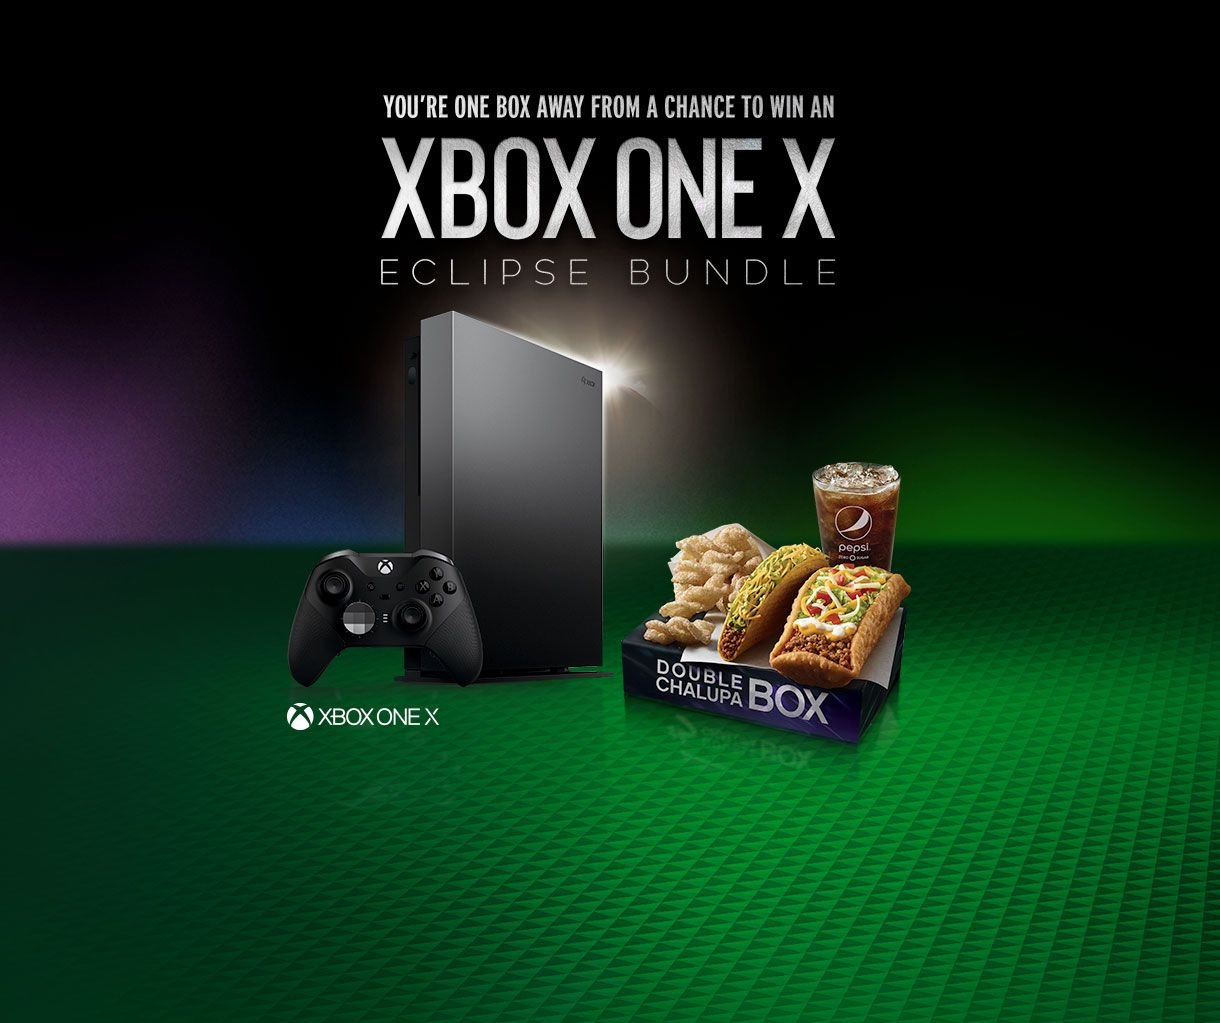 Taco Bell offers 14 days of Xbox Game Pass Ultimate when